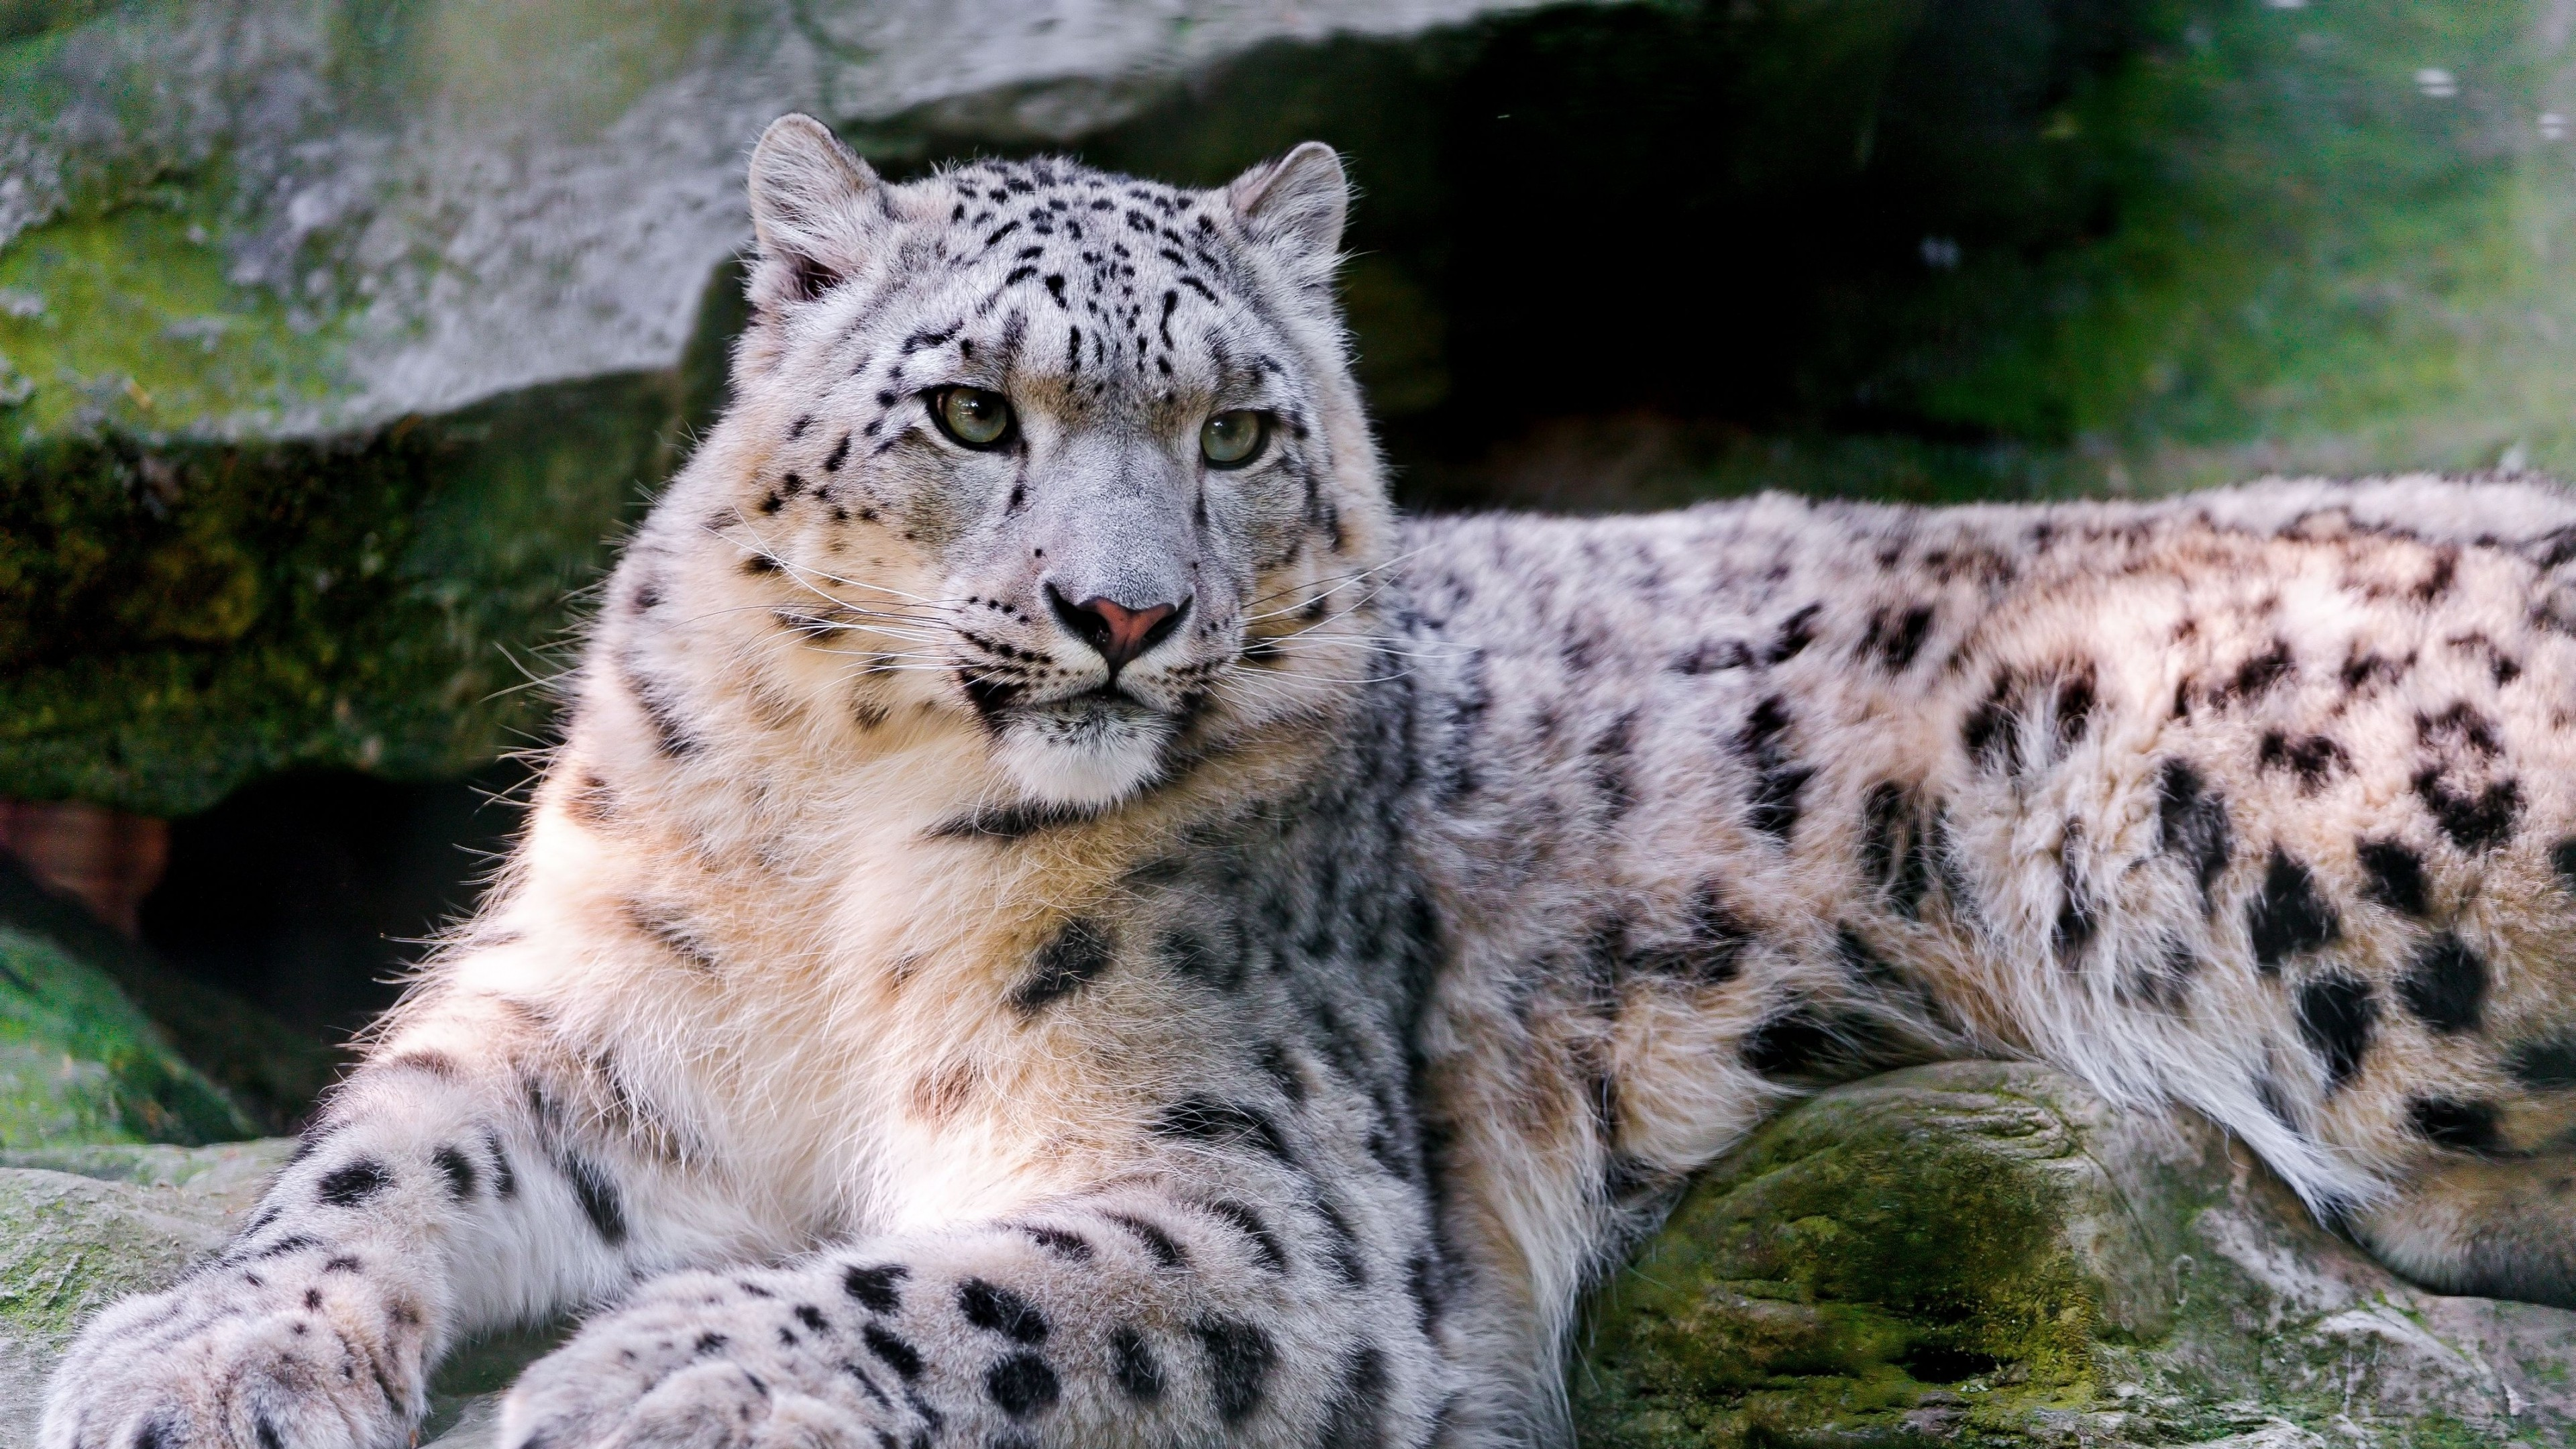 Cute Pets Wallpapers Hd Wallpaper Snow Leopard Wild Nature Eyes Animals 596